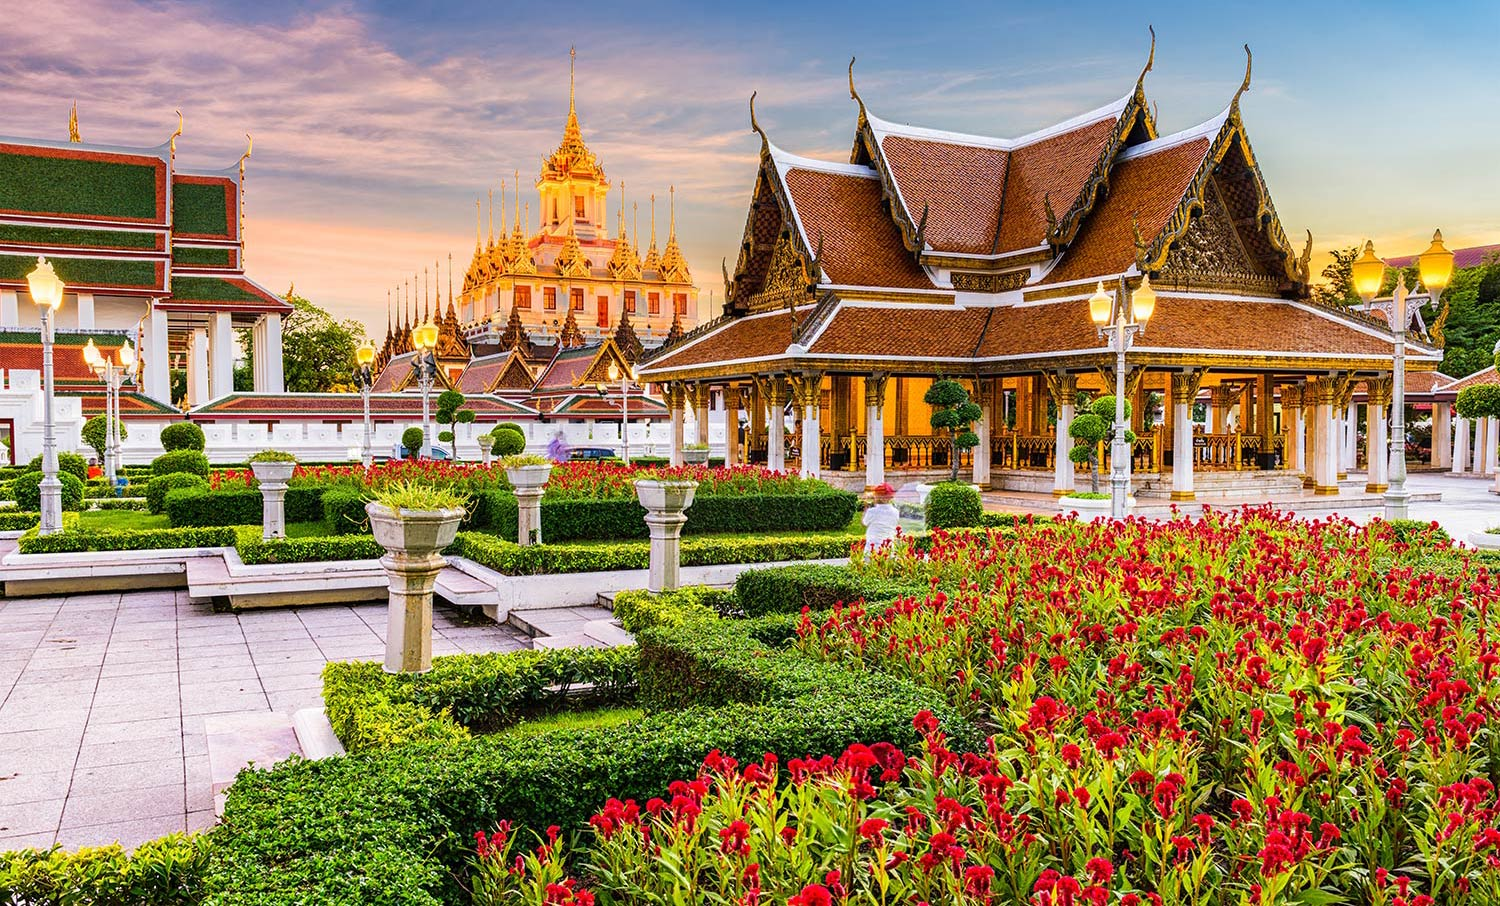 Buddhist temple surrounded by red flowers in Bangkok